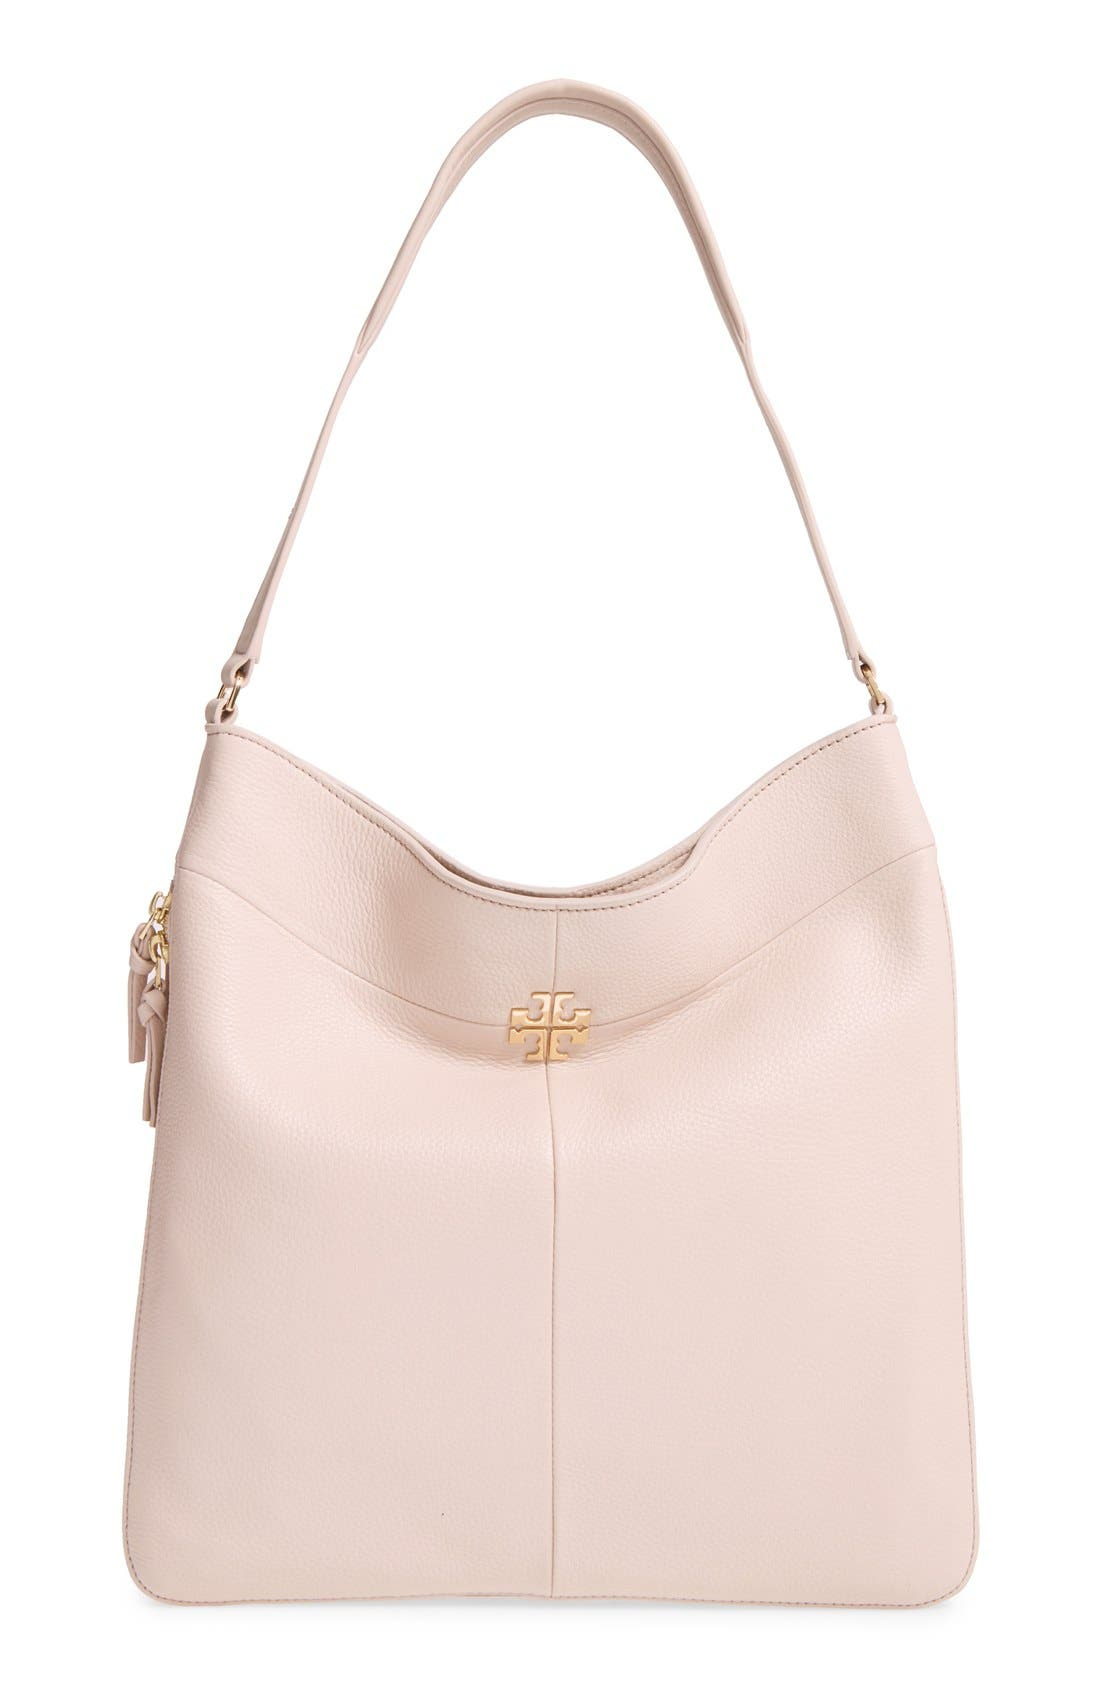 Alternate Image 1 Selected - Tory Burch Ivy Leather Hobo